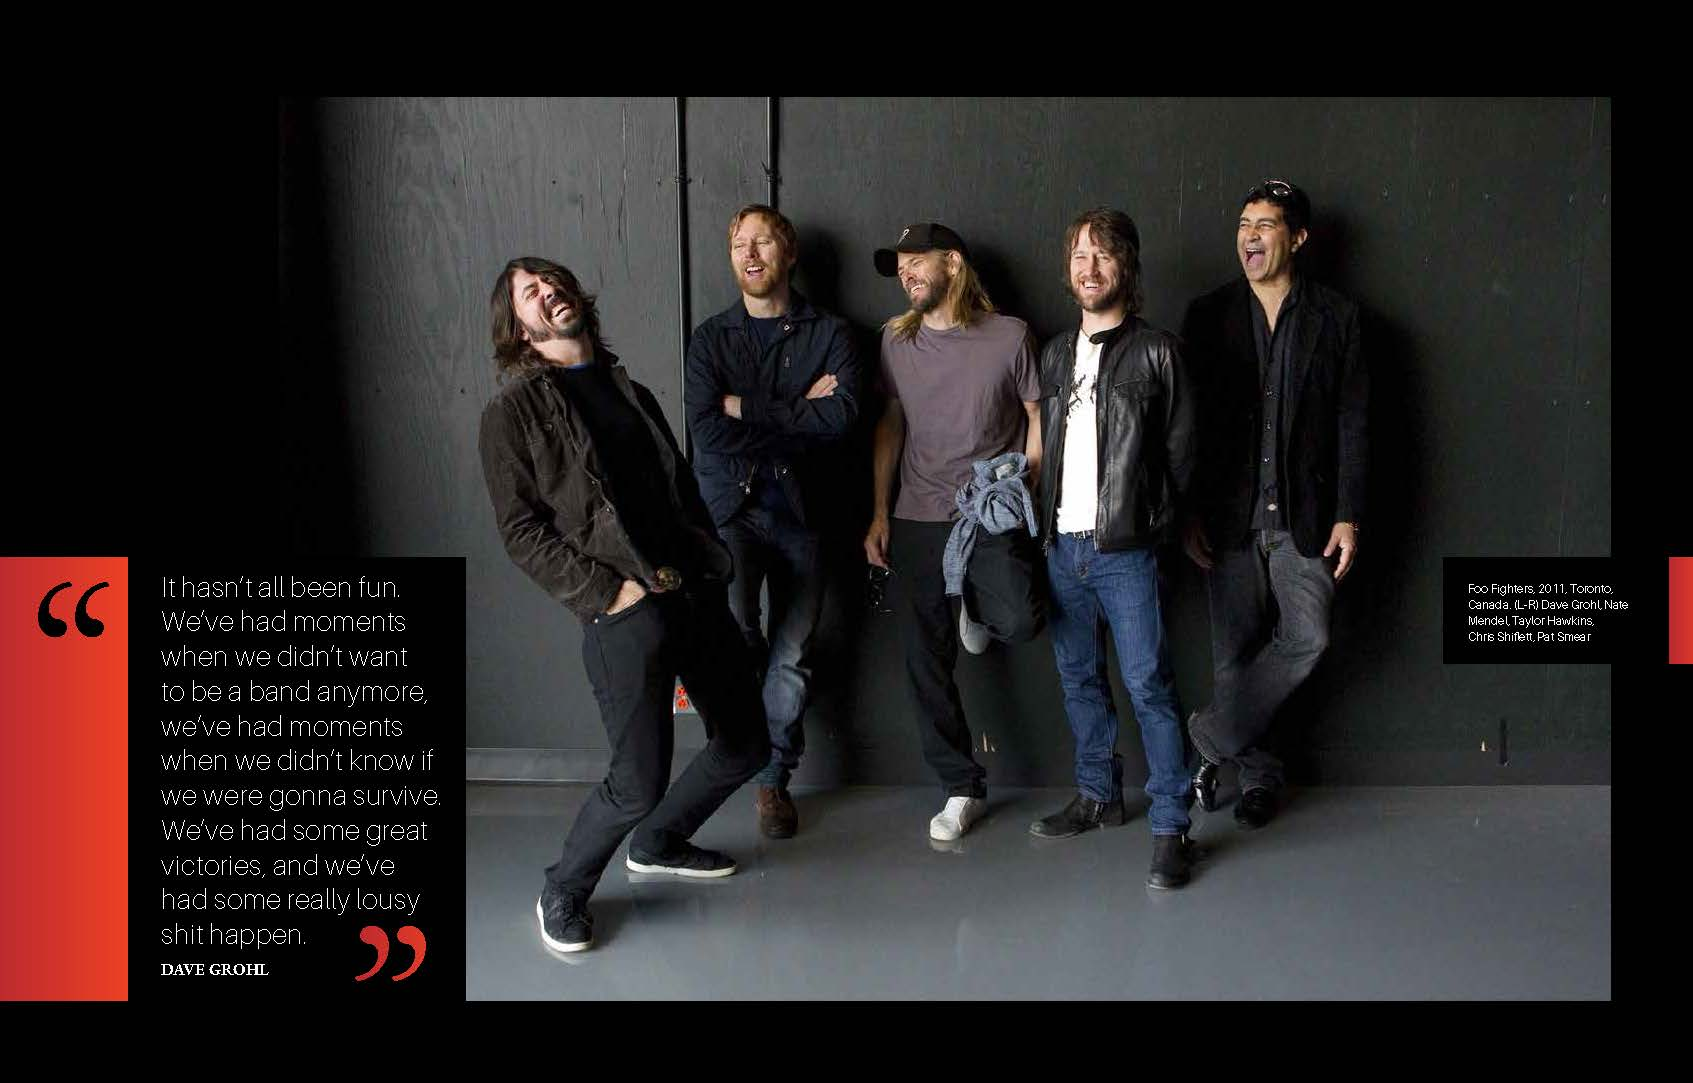 Foo Fighters The Band That Dave Made